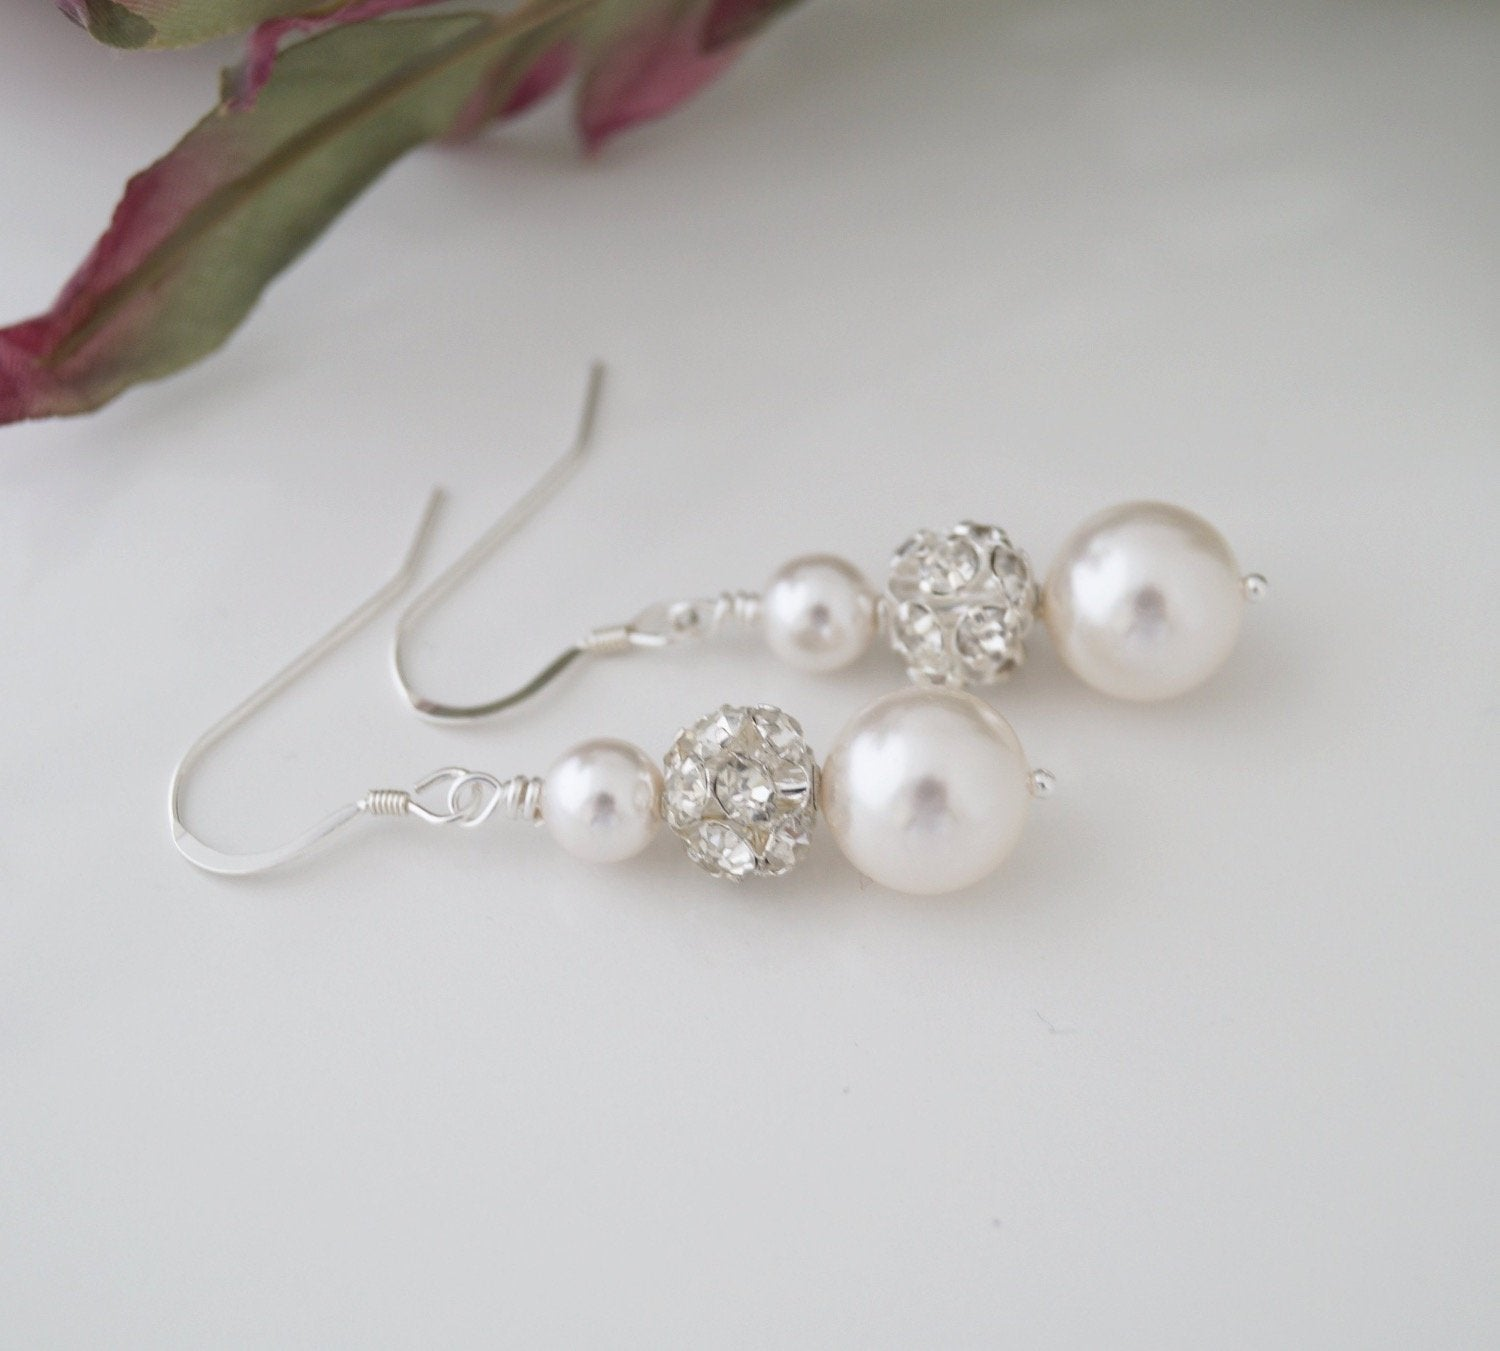 Pearl and Crystal Rhinestone Earrings Wedding Jewelry - Clairesbridal - 1